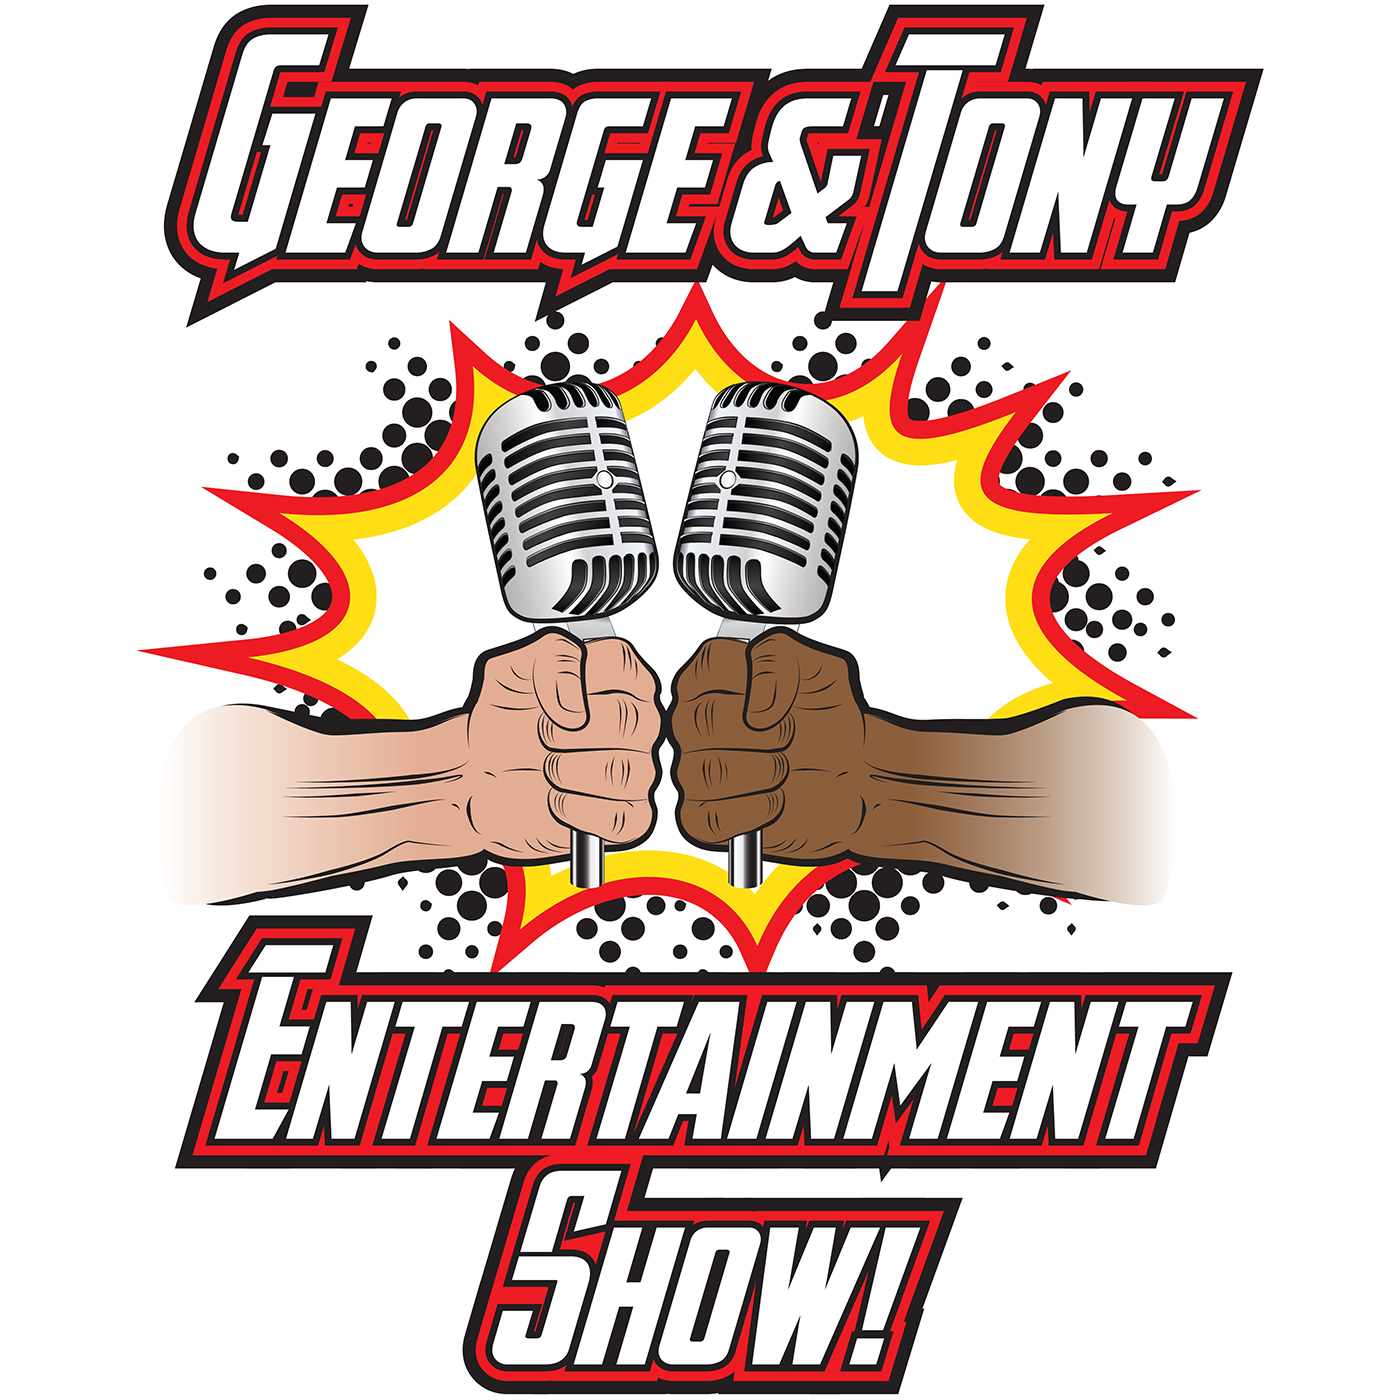 George and Tony Entertainment Show #96